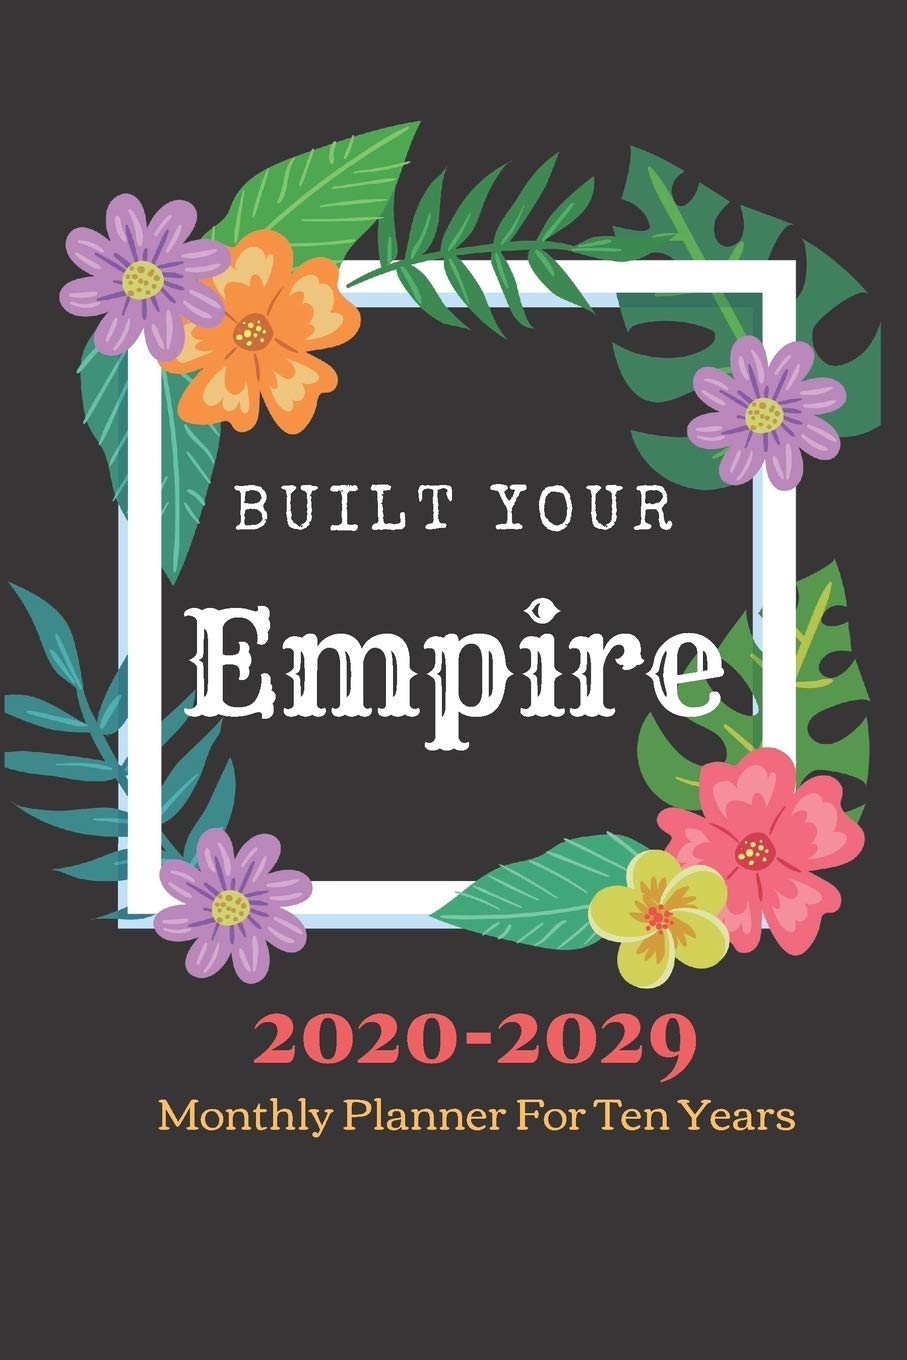 Built Your Empire Monthly Planner 2020  2029 Notebook Diary: Ten Year Journal Planner Calendar 2020 2029 10 Years Agenda S...